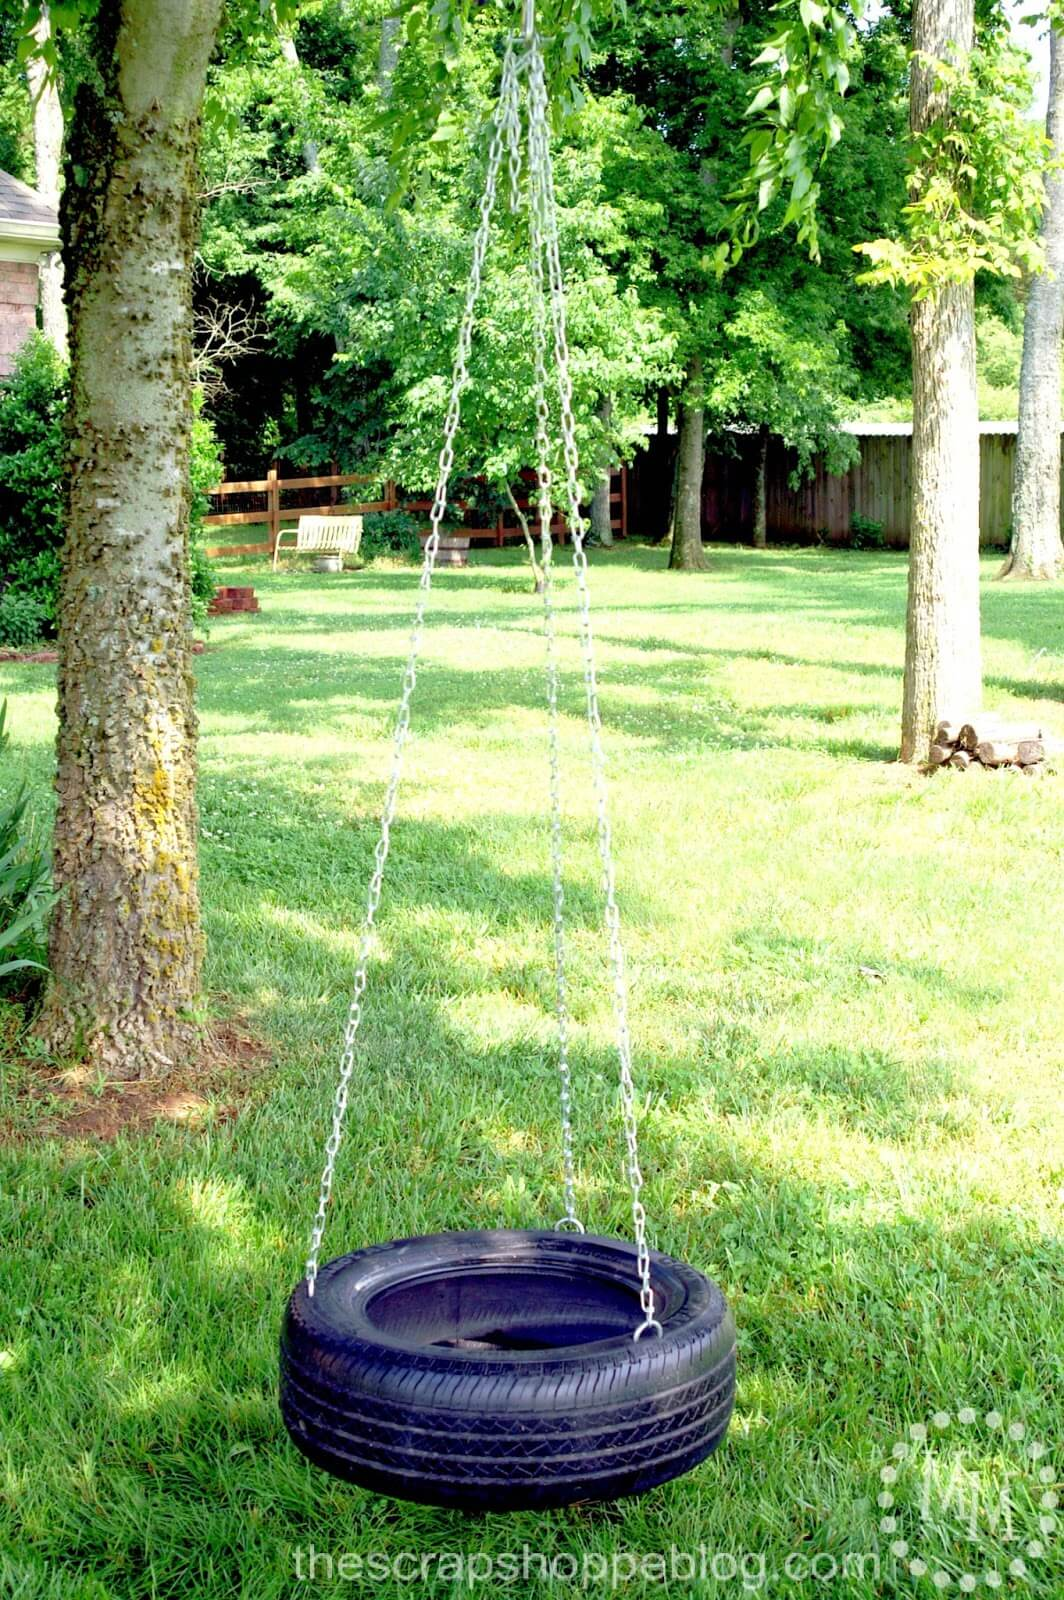 The Good Old Traditional Tire Swing